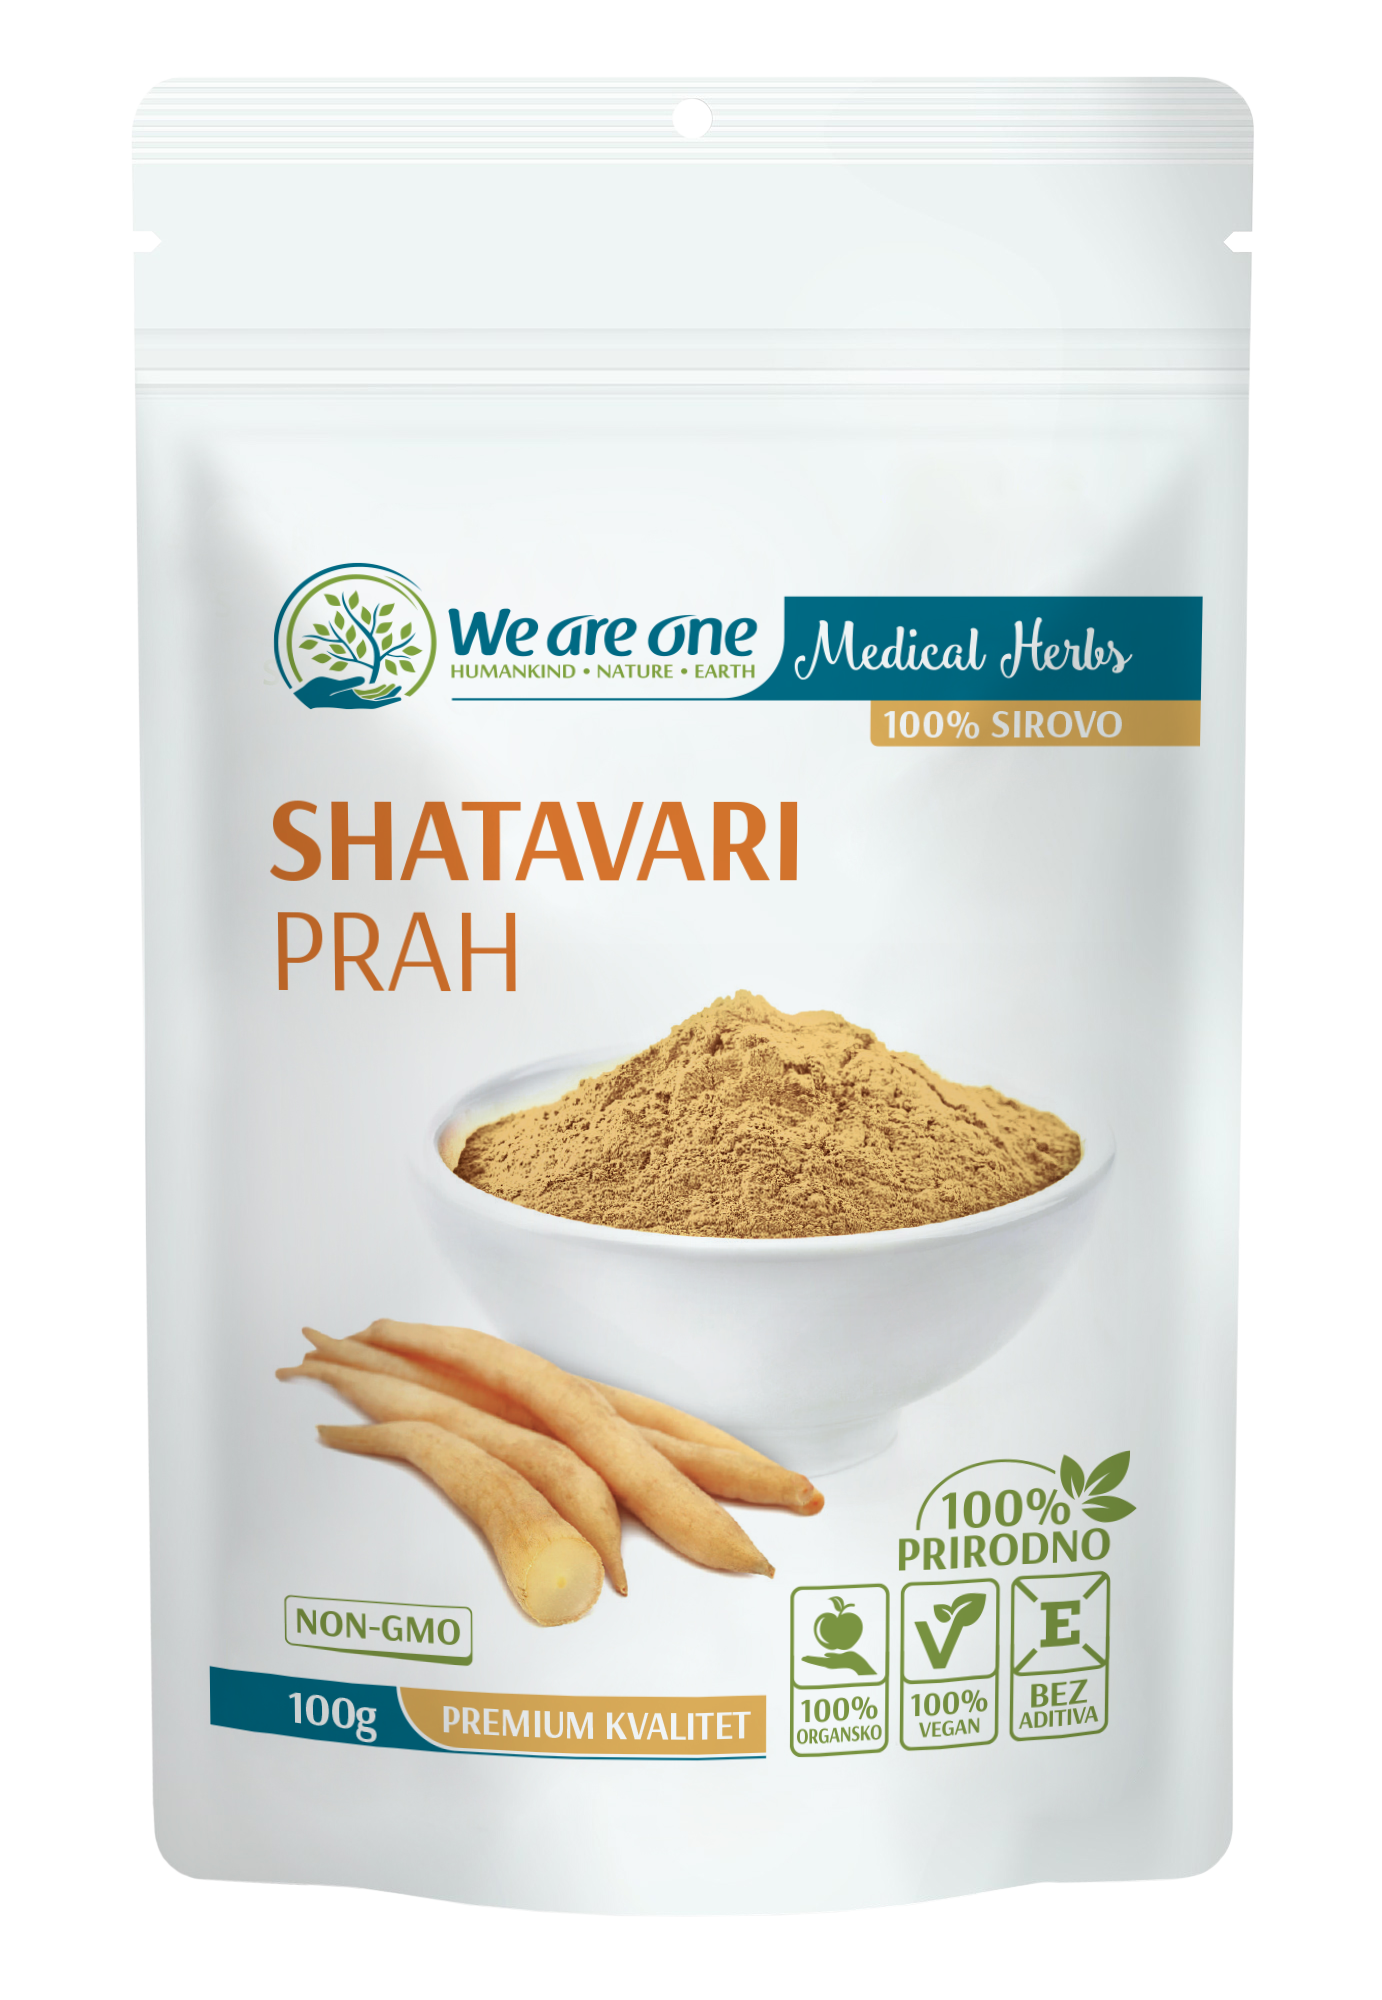 SHATAVARI PRAH, WE ARE ONE 100G